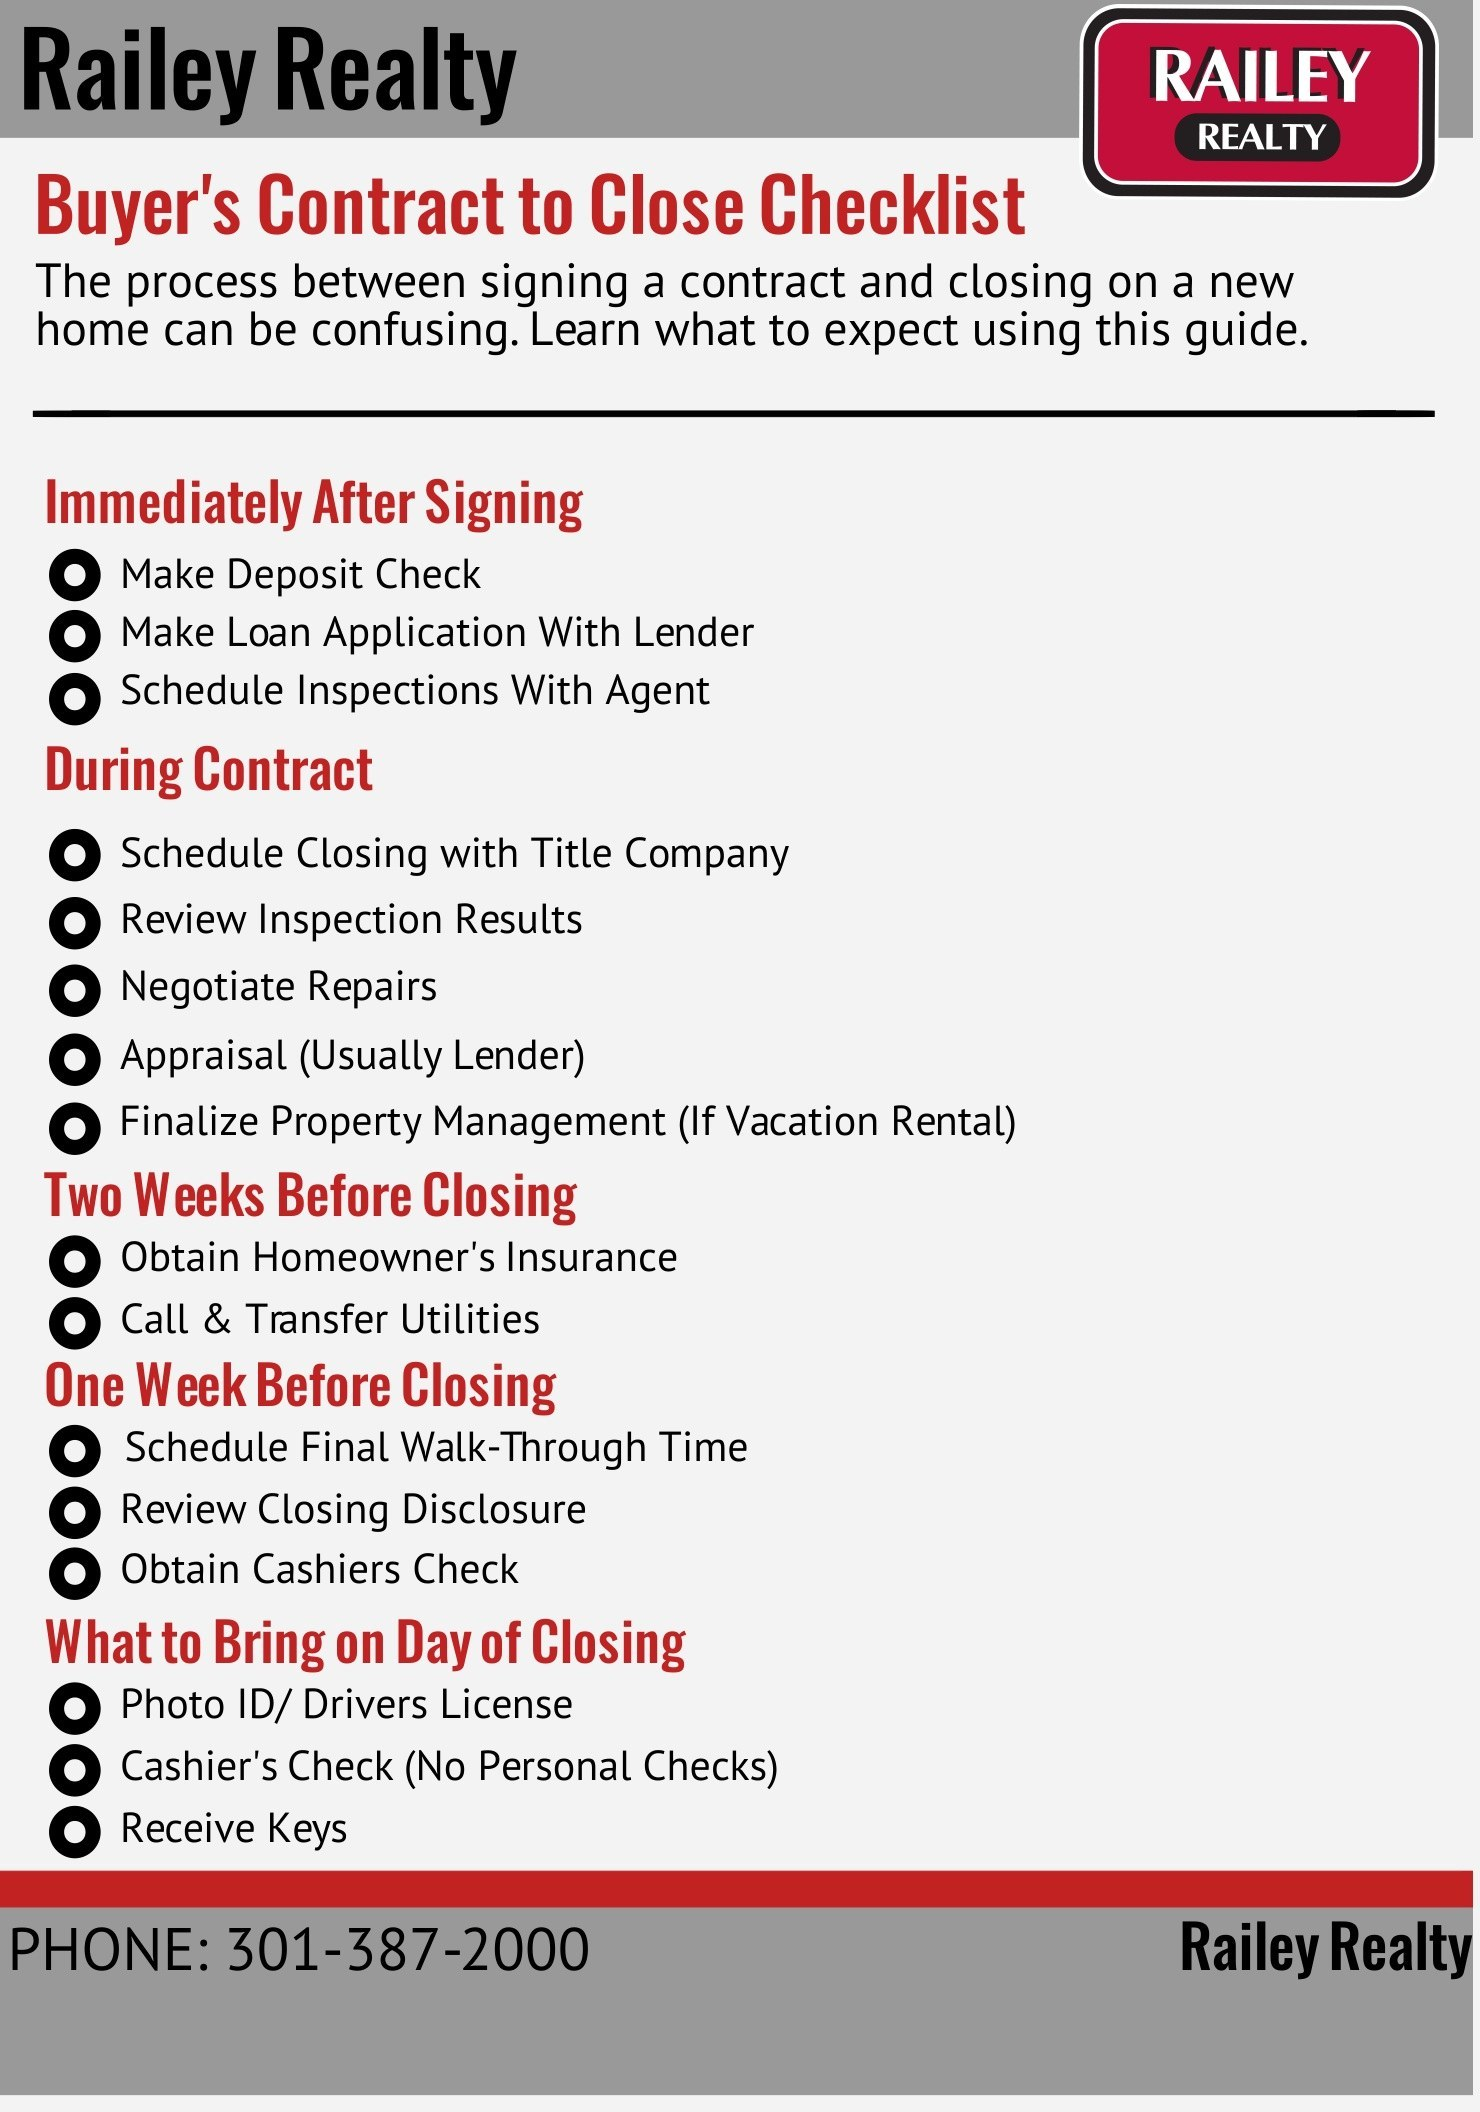 Railey Realty Buyers Contract to Close Checklist